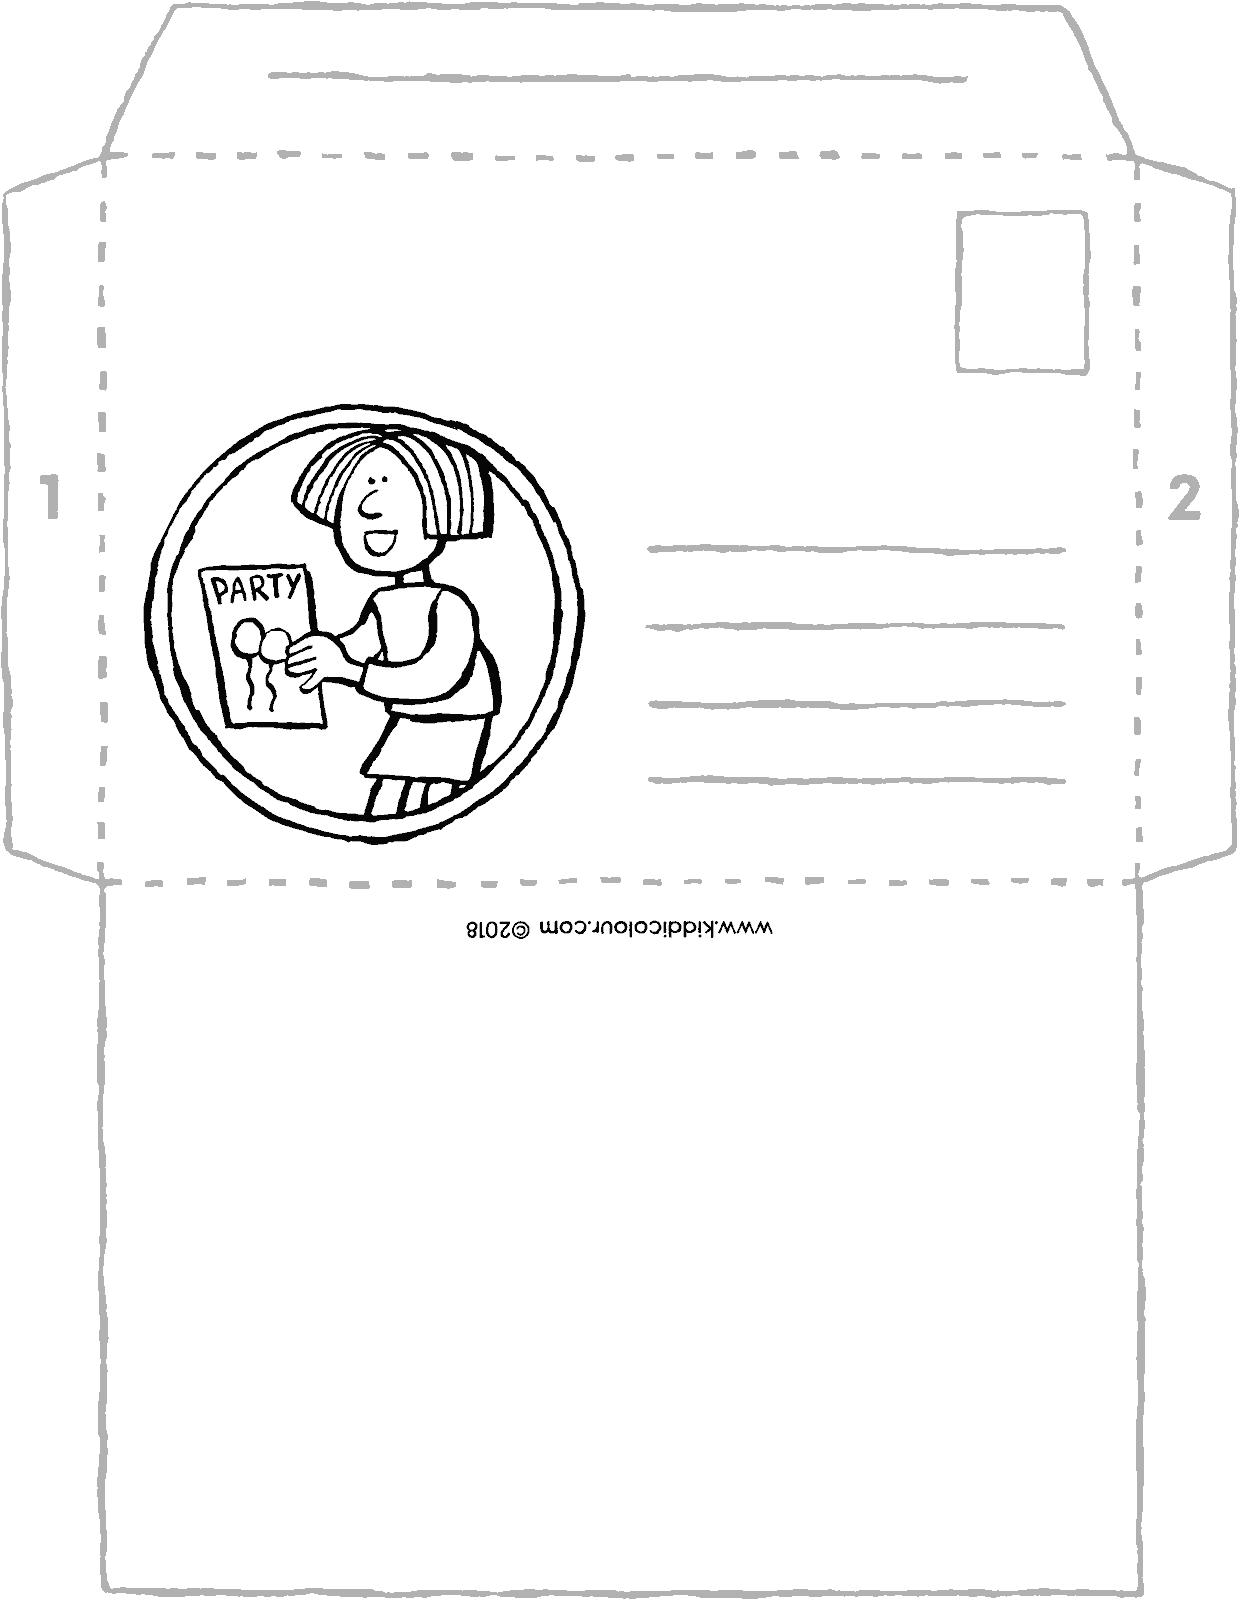 envelope for an invitation colouring page drawing picture 01V